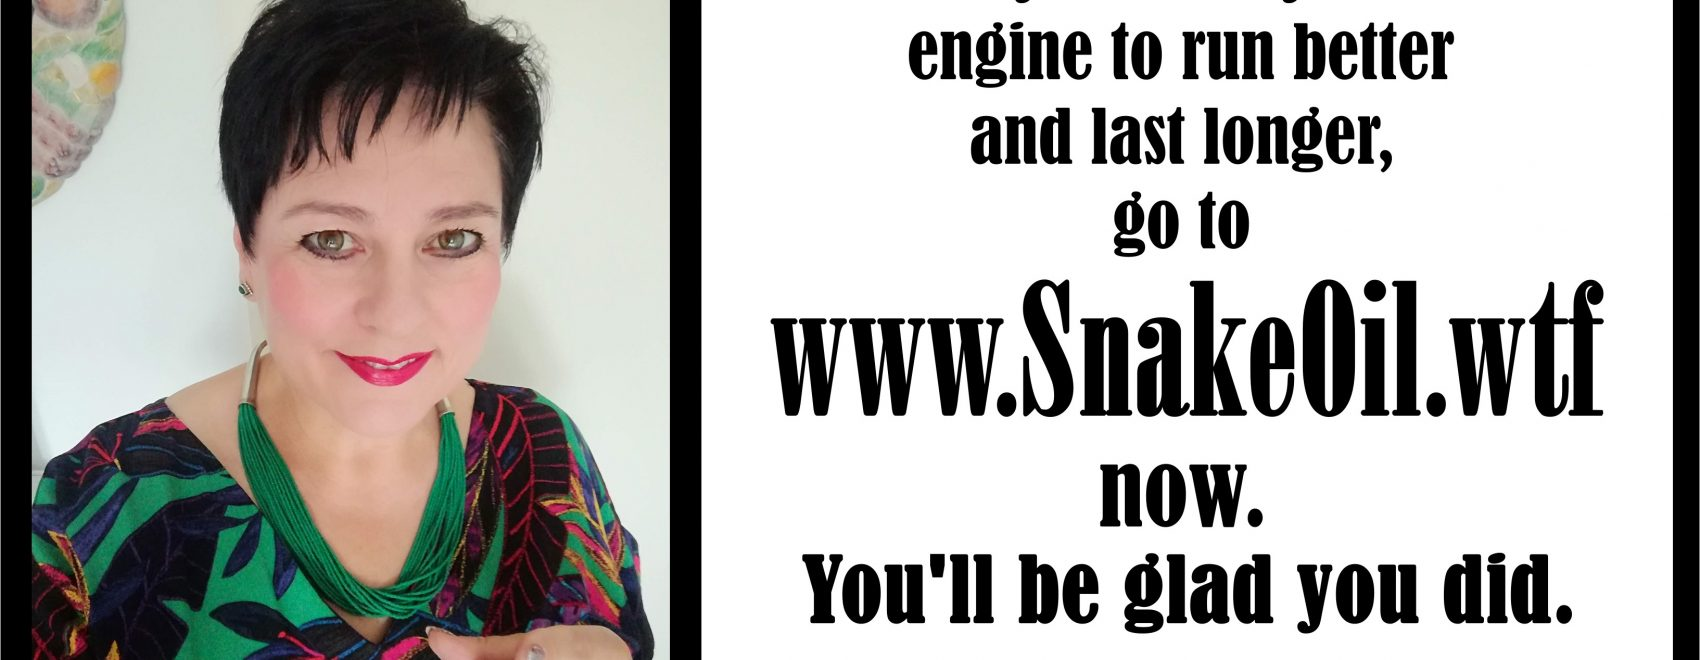 Andrea says Make your engine last longer with Snake Oil.